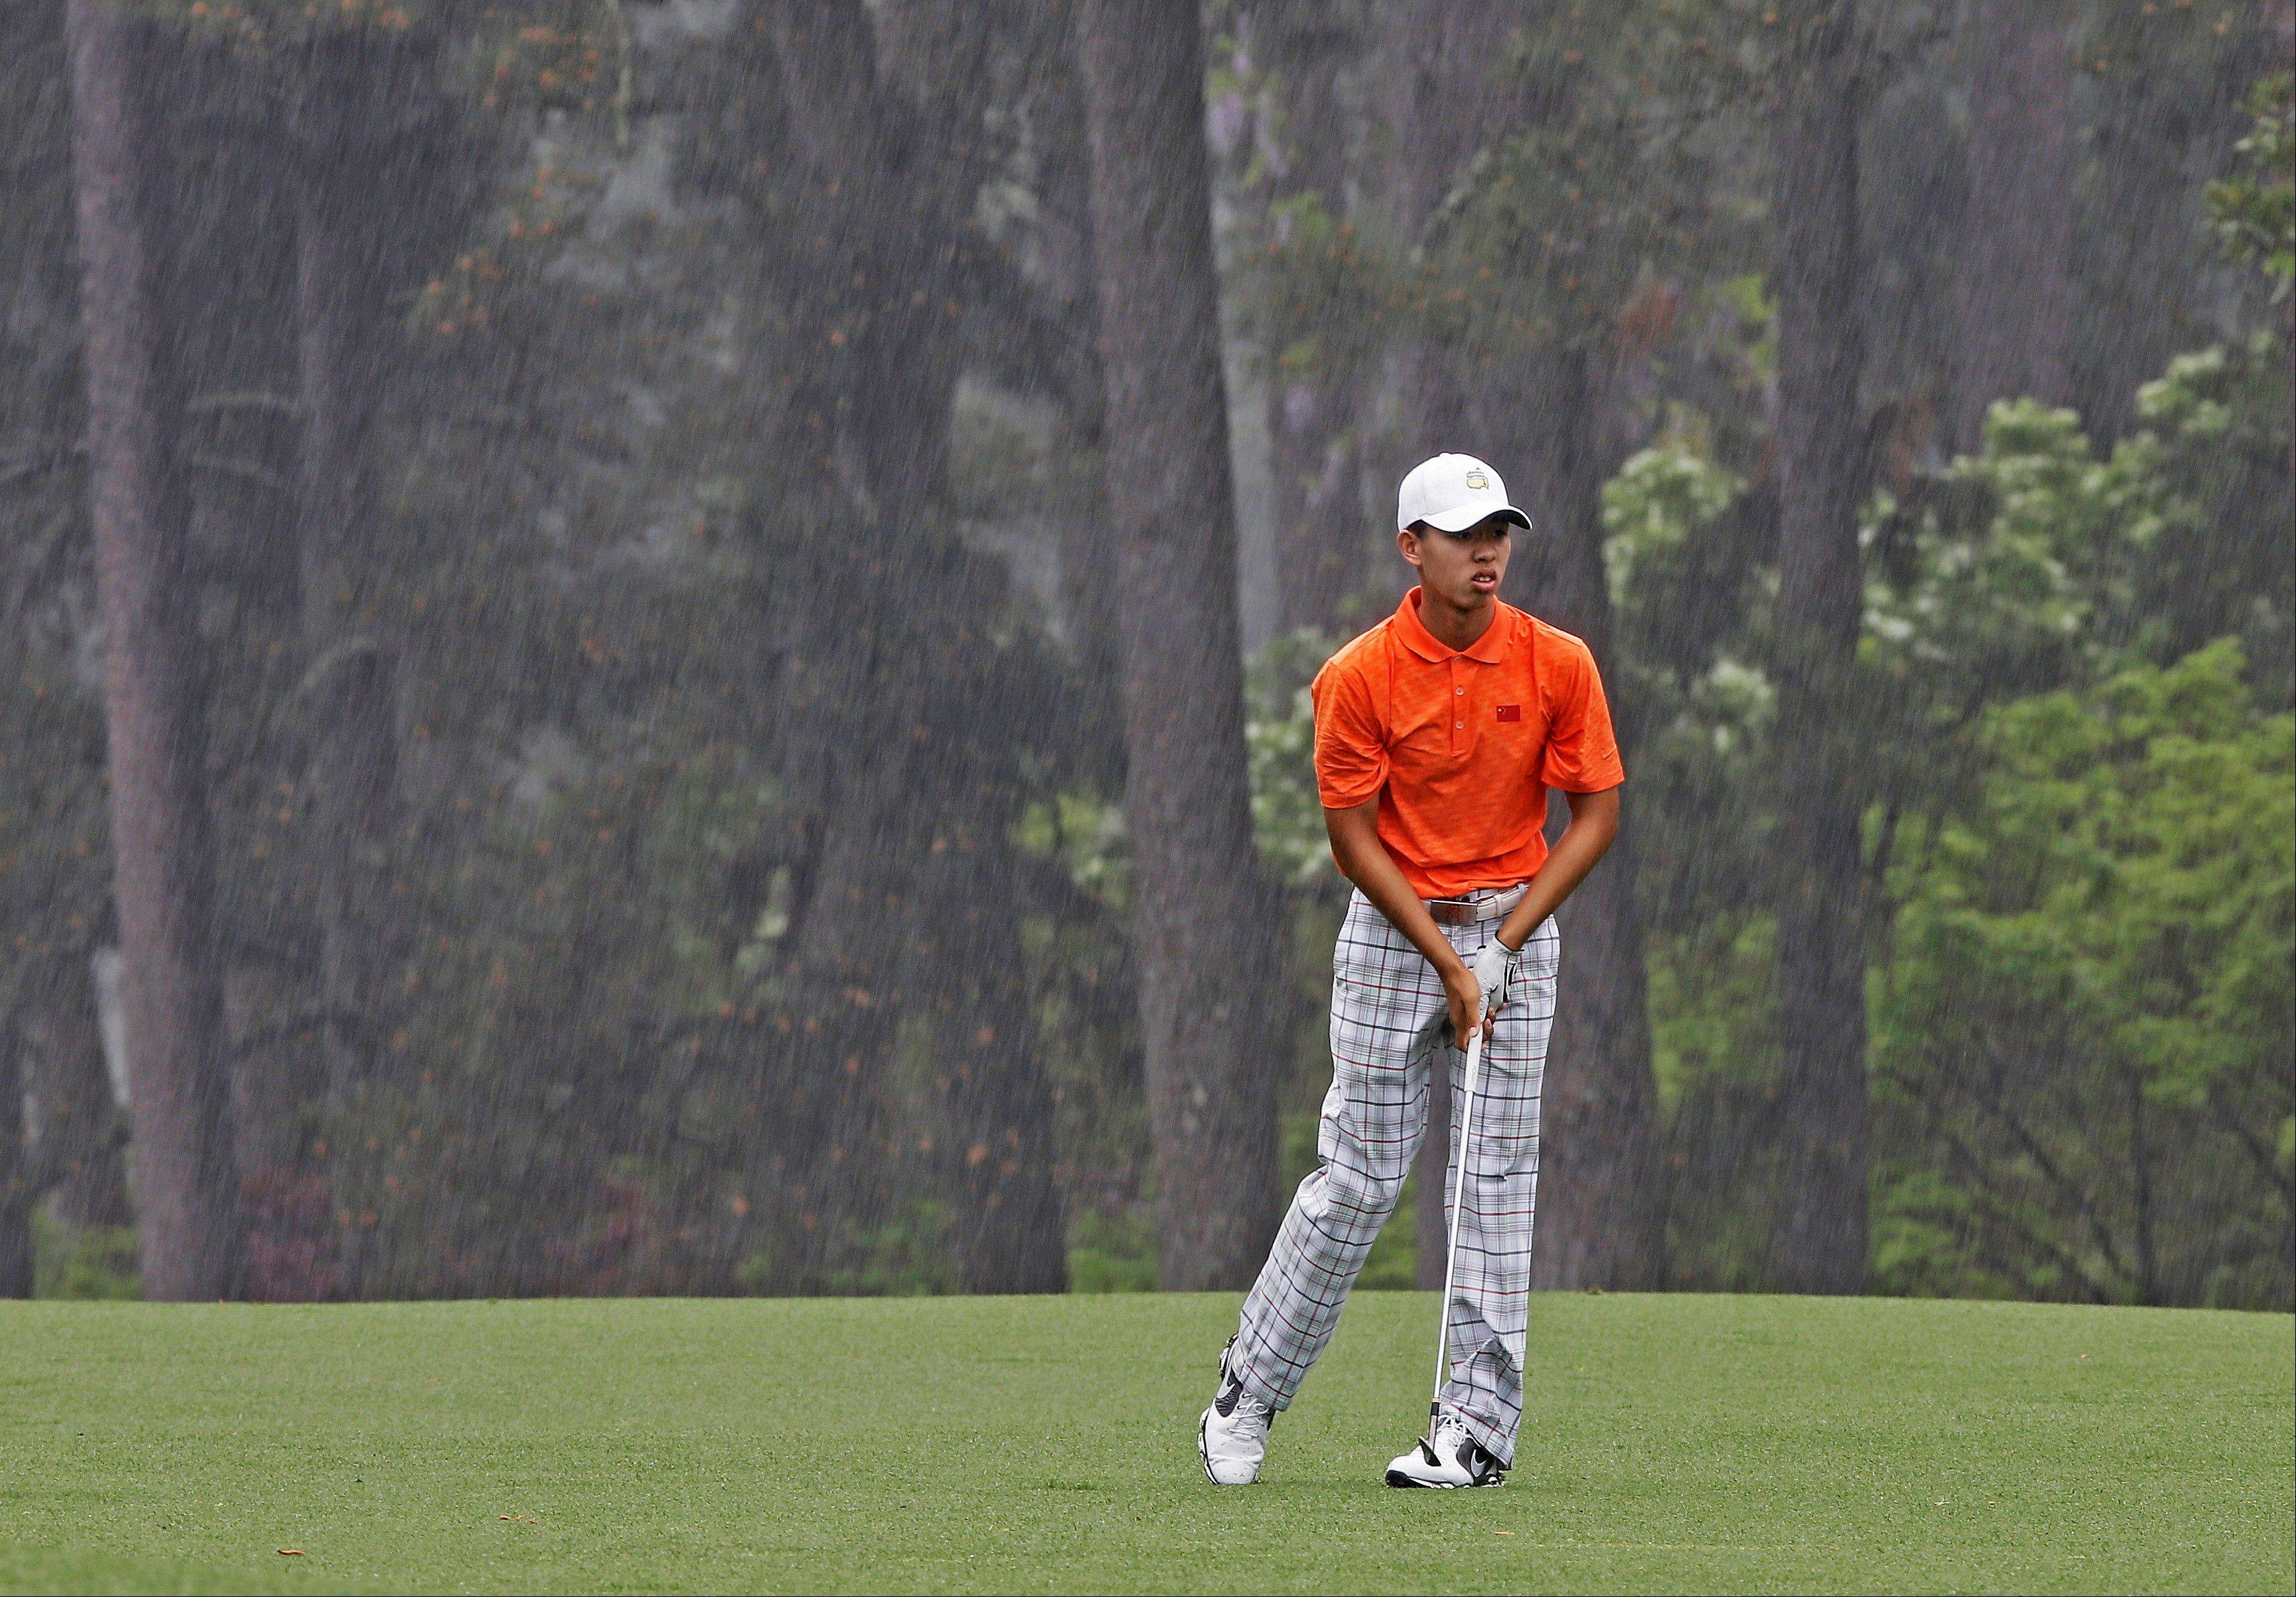 Amateur Guan Tianlang, of China, watches his ball after hitting in the rain on the eighth fairway during the second round of the Masters golf tournament Friday, April 12, 2013, in Augusta, Ga.